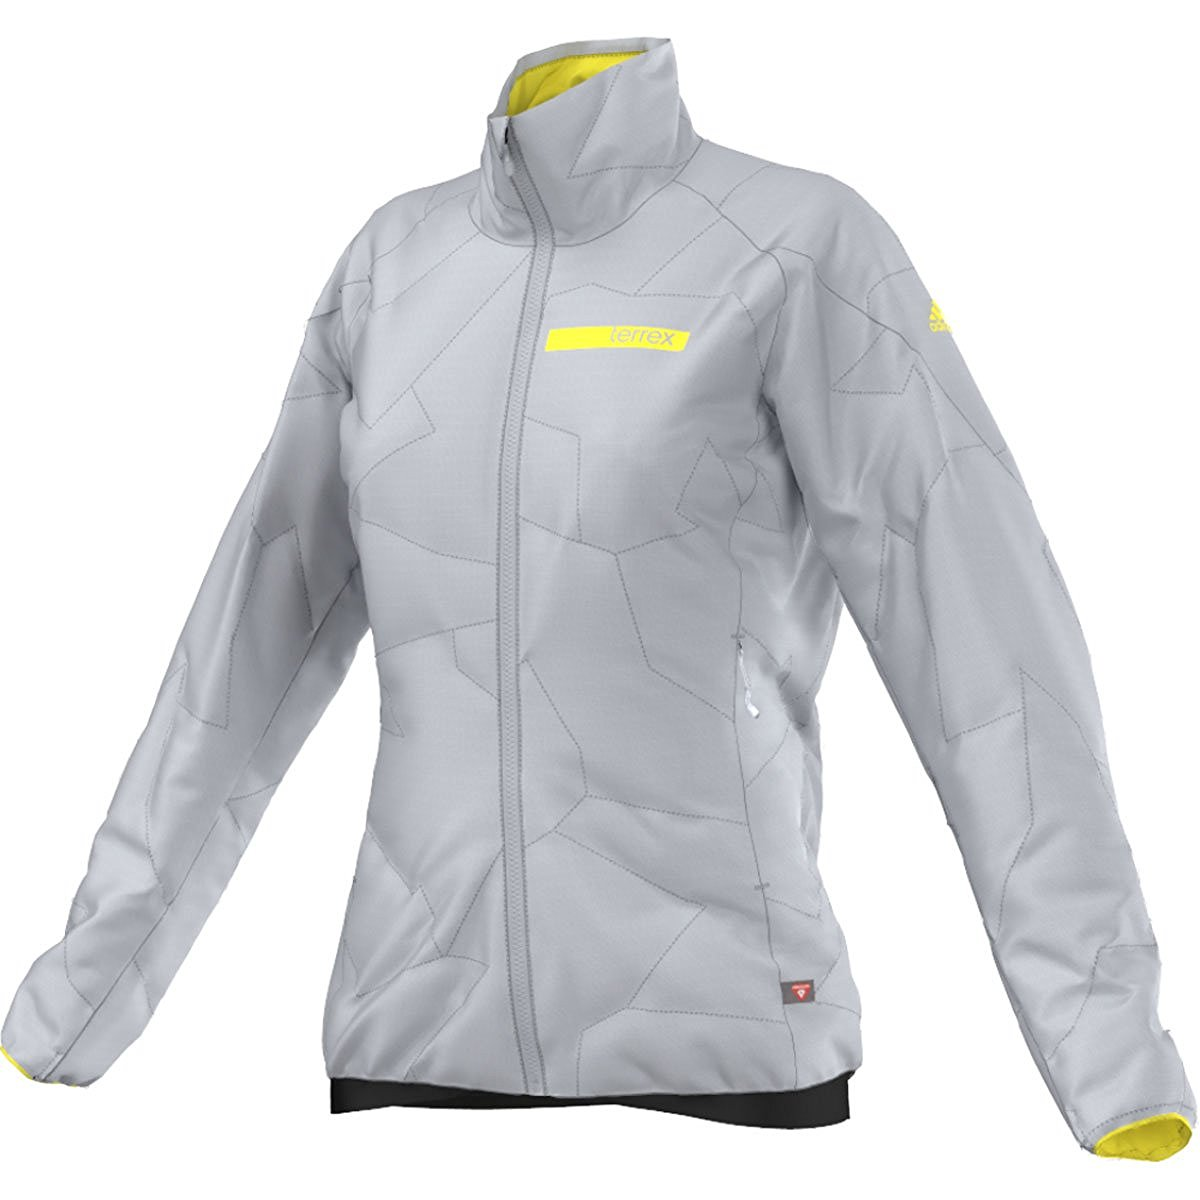 Swift Grey Clear SizeLarge Adidas Jacket Women's Check Terrex Back Soon Primaloft 354jALRq